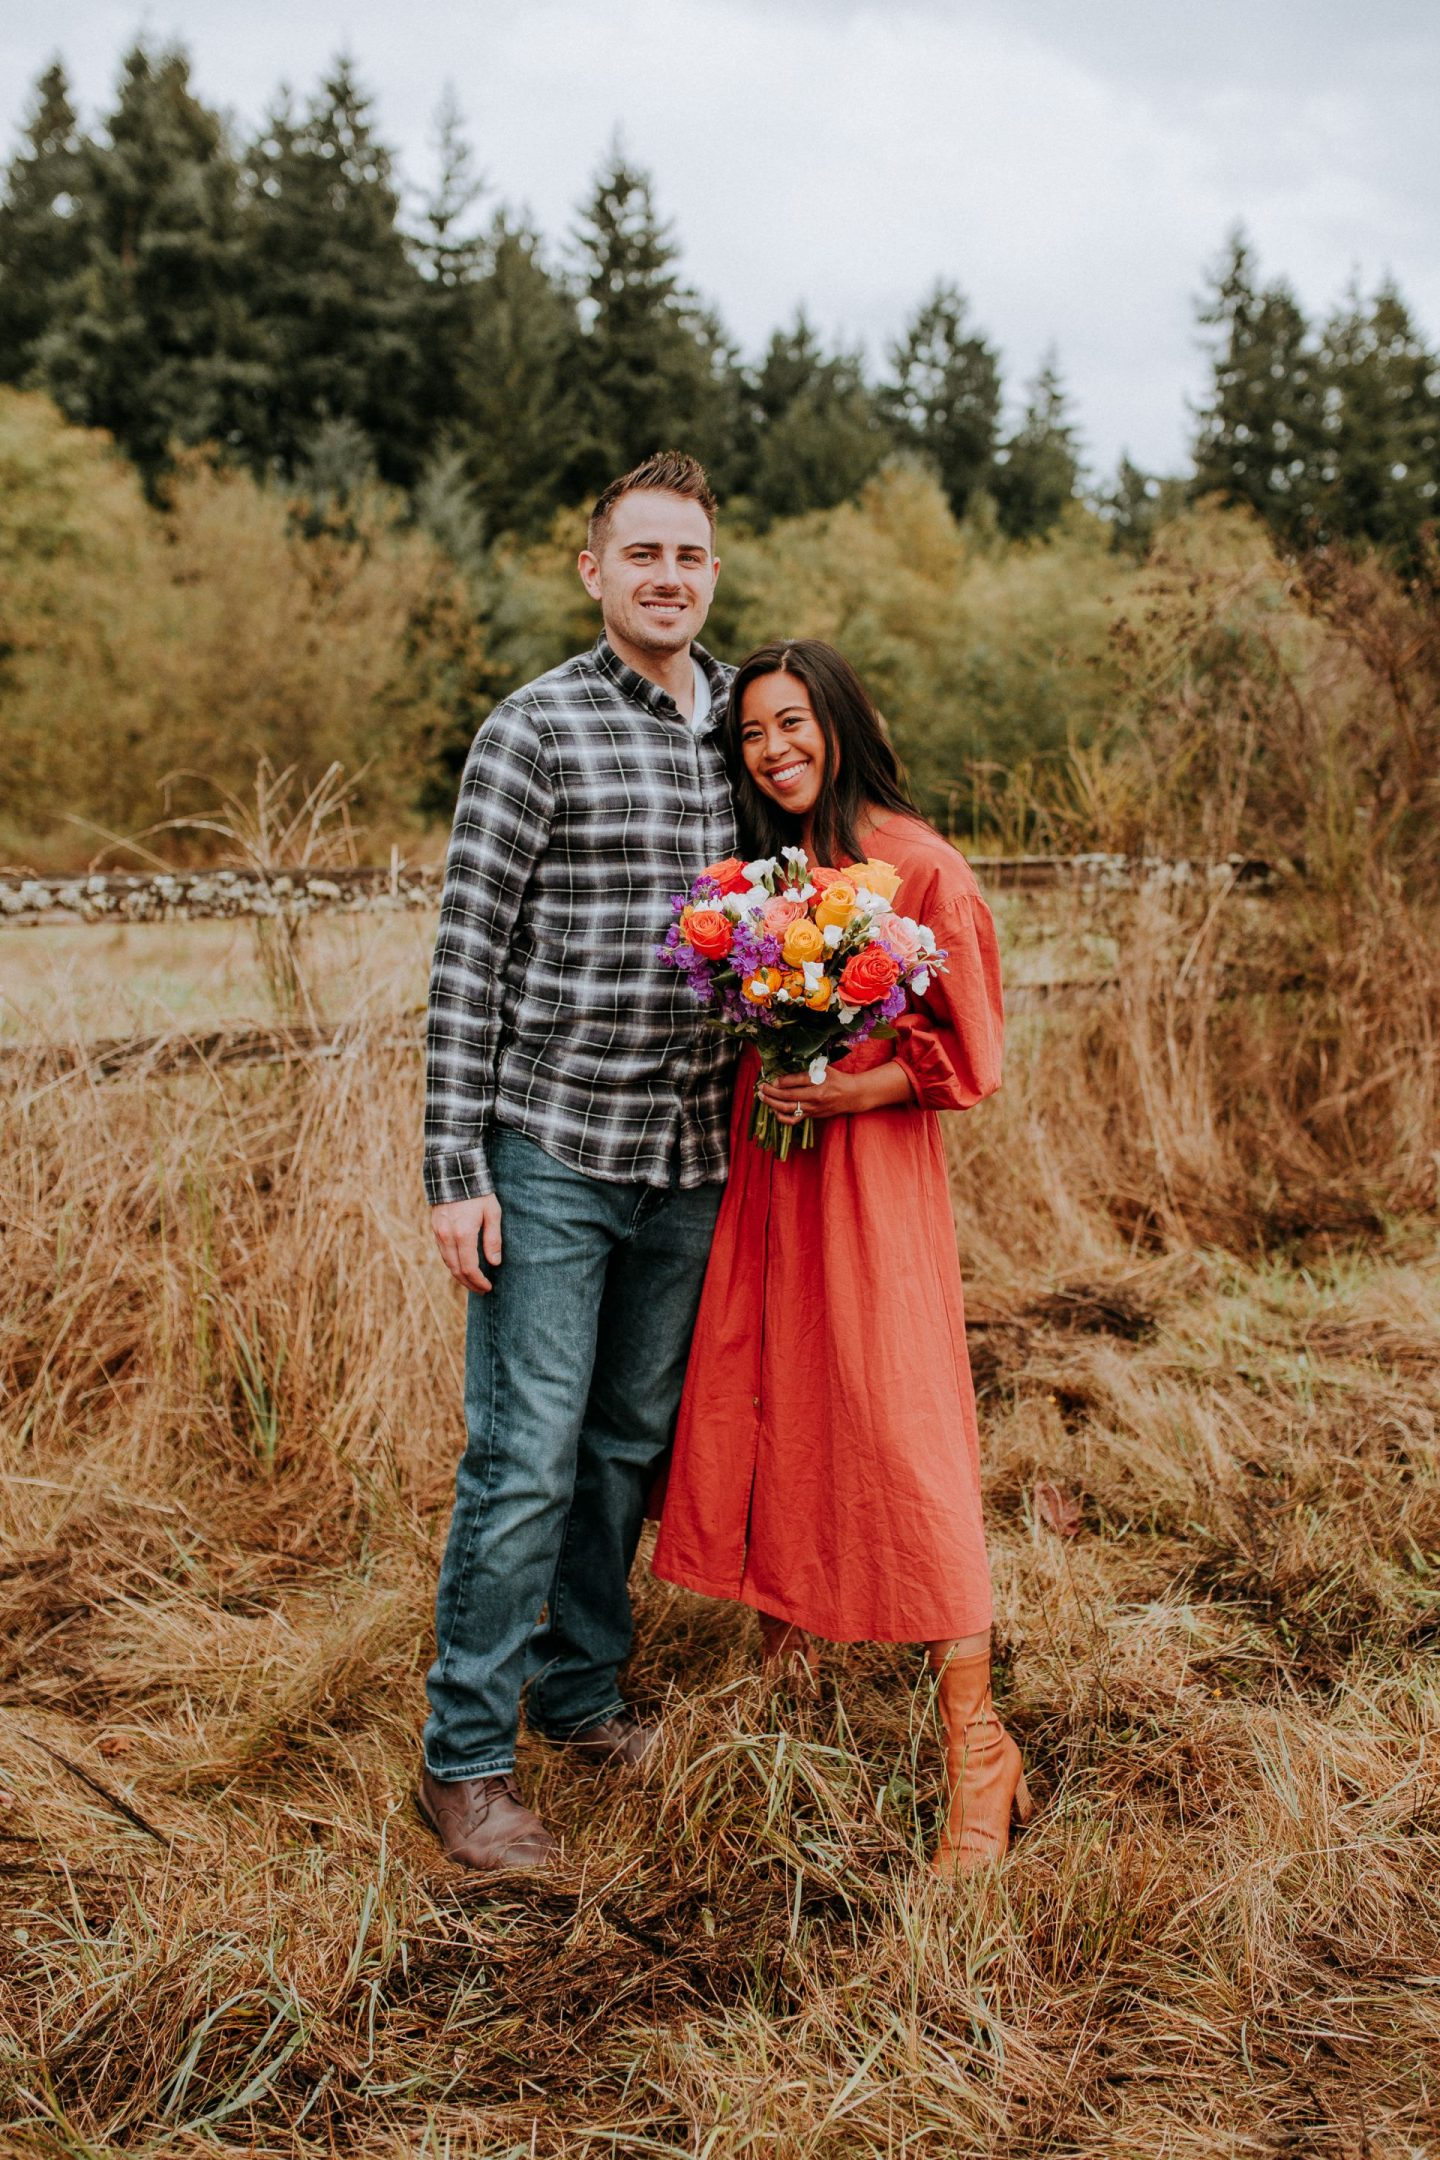 one year engagement with urbanstems - engagement photos - engagement photo ideas - bouquets for engagement photos